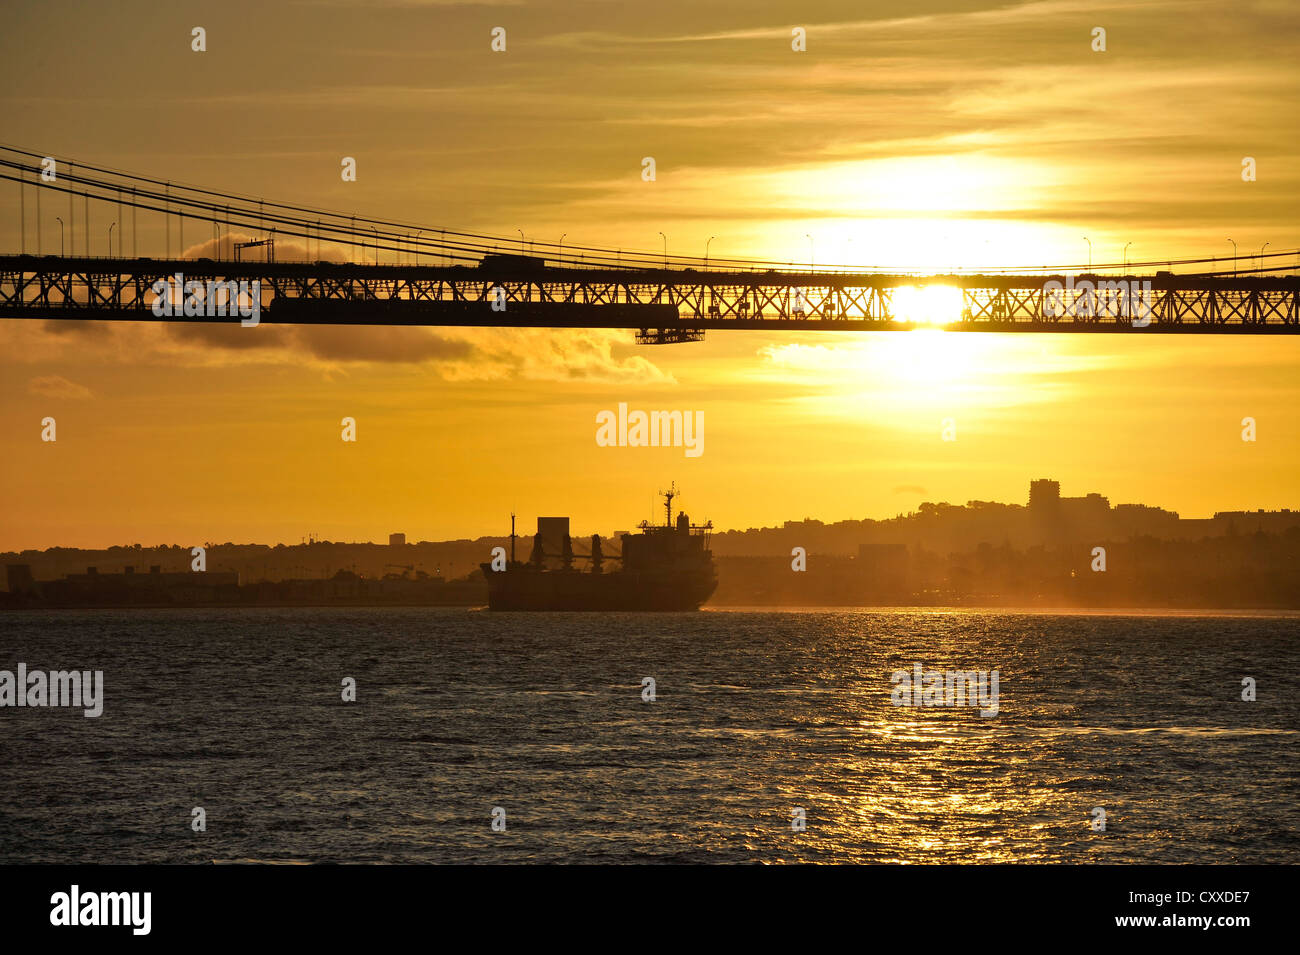 View of 25 de Abril Bridge and the suburb of Belem at sunset, as seen from Cacilhas, Portugal, Europe Stock Photo